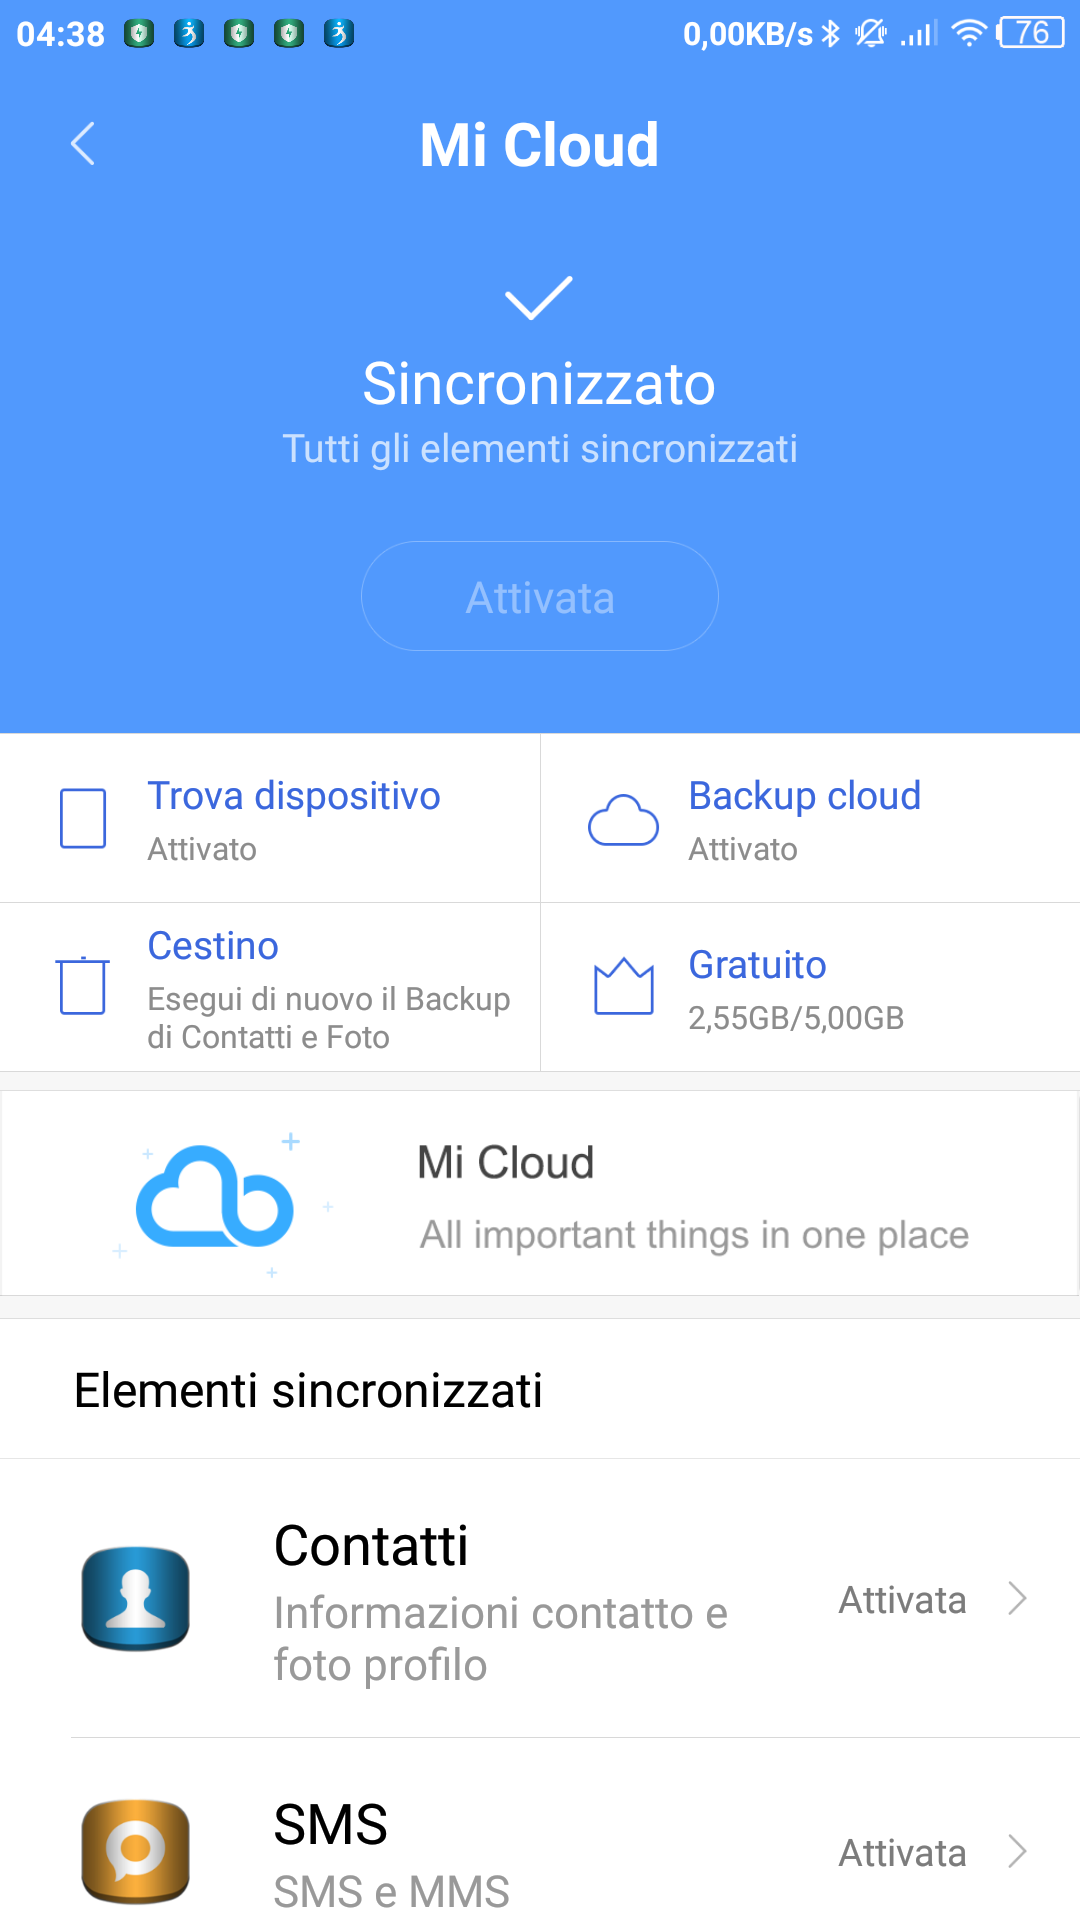 Screenshot_2018-10-16-04-38-29-512_com.miui.cloudservice.png